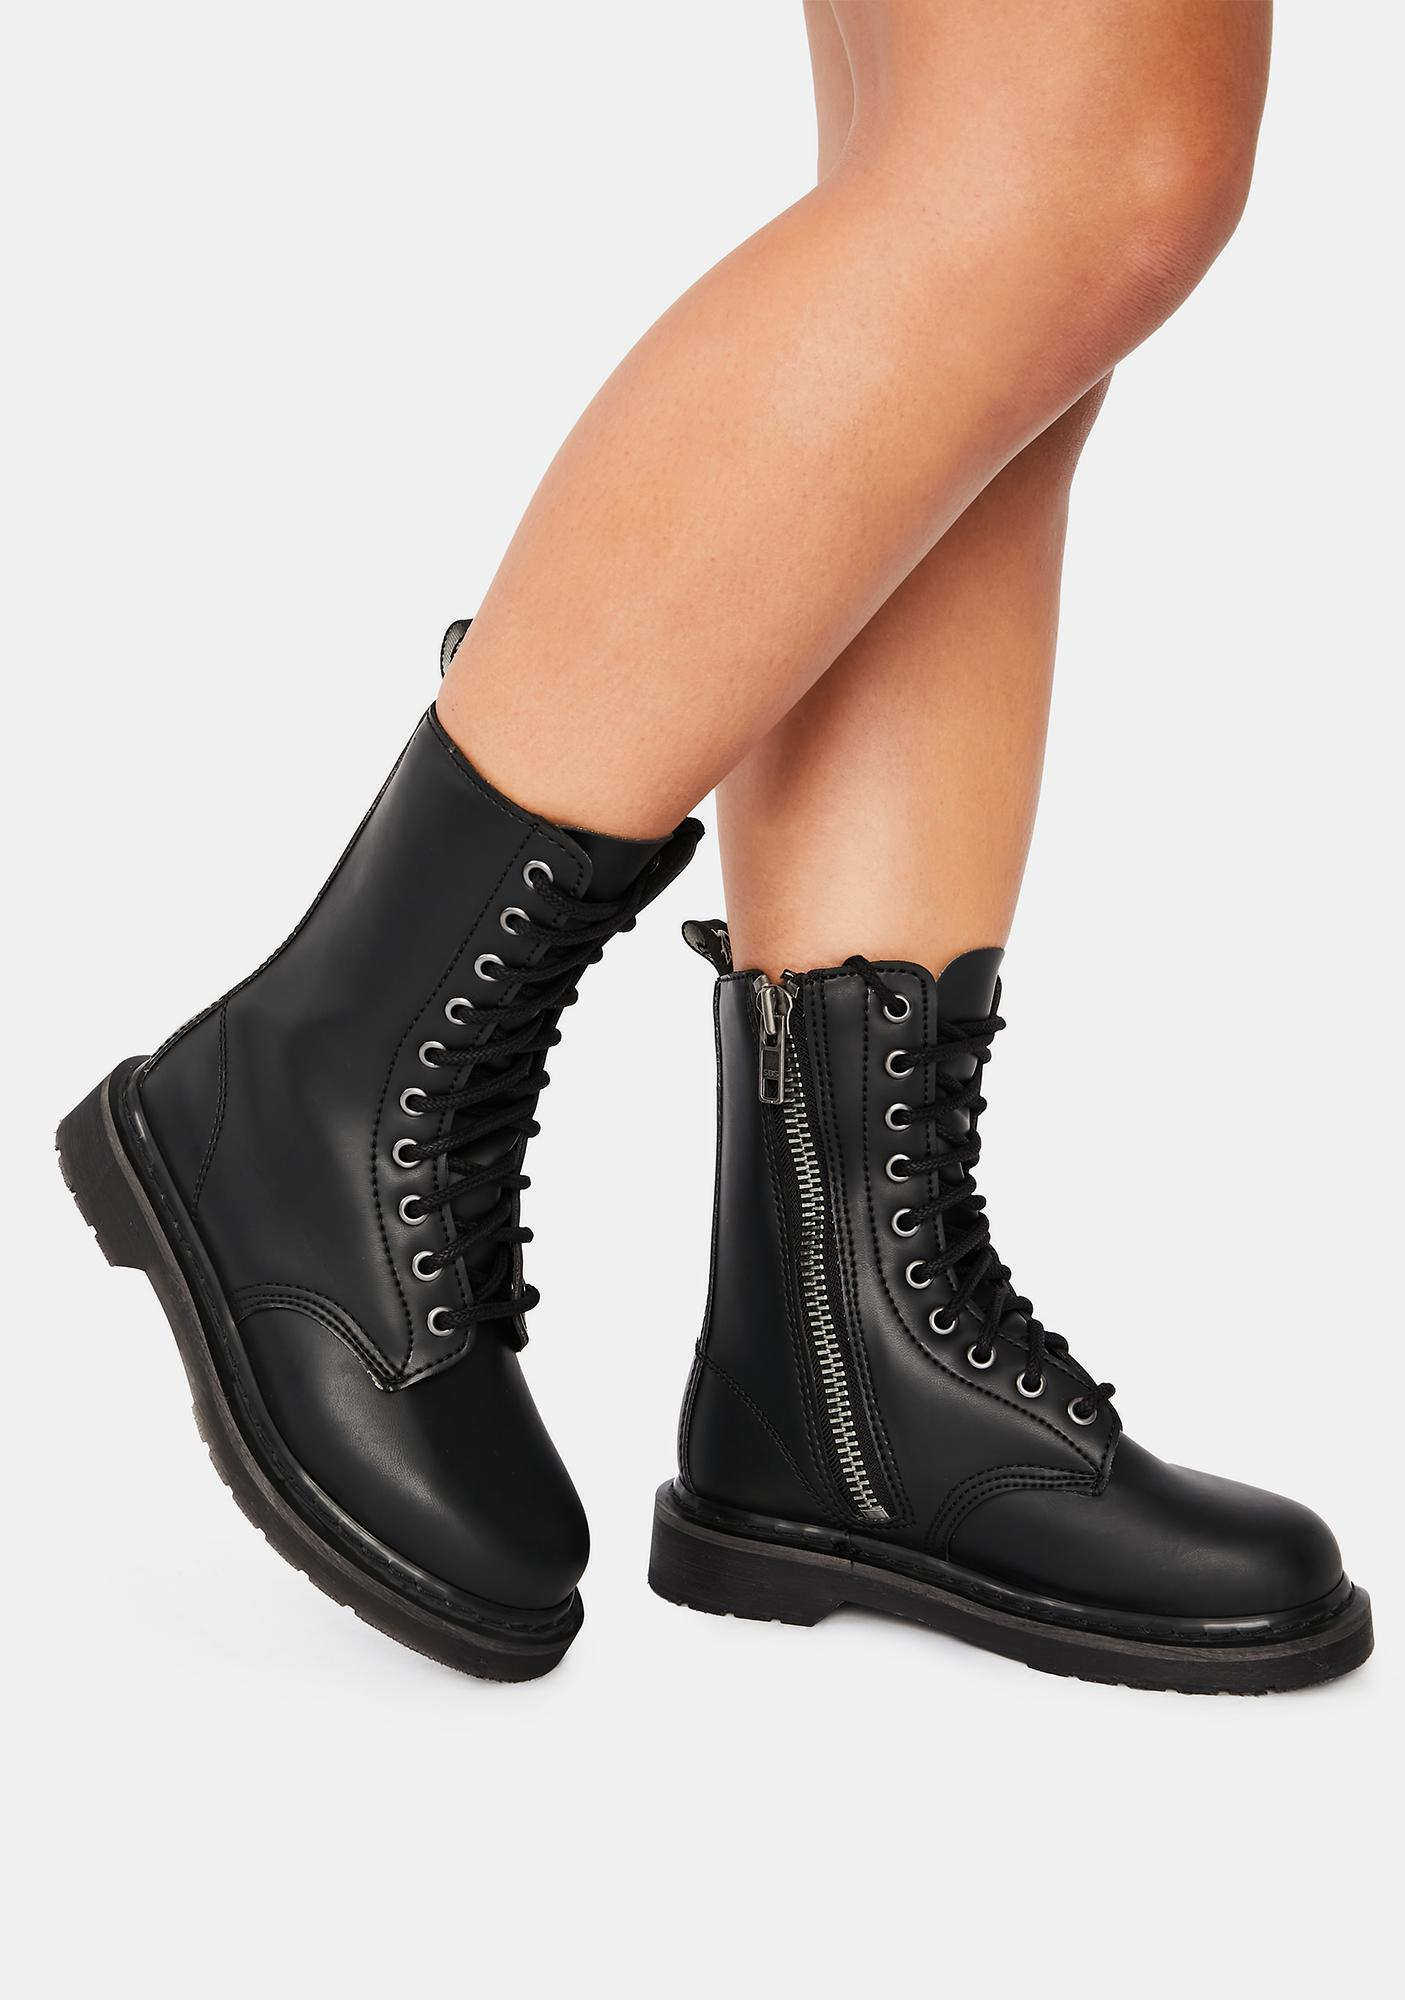 Demonia Never Back Down Combat Boots